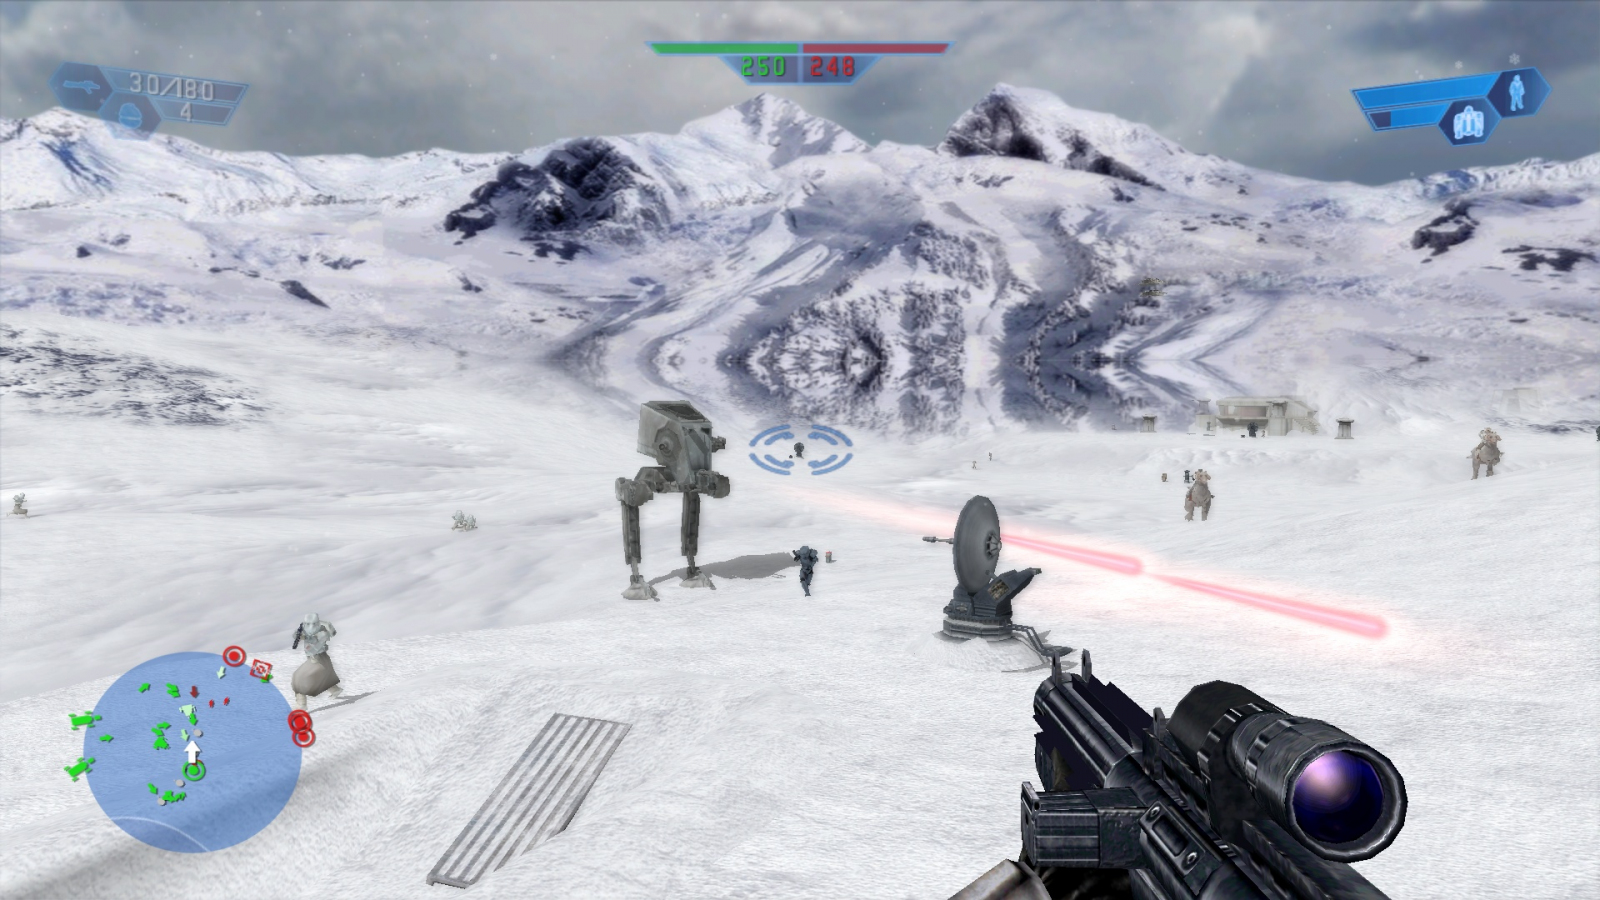 Battlefront 1.3.5 - Hoth #1